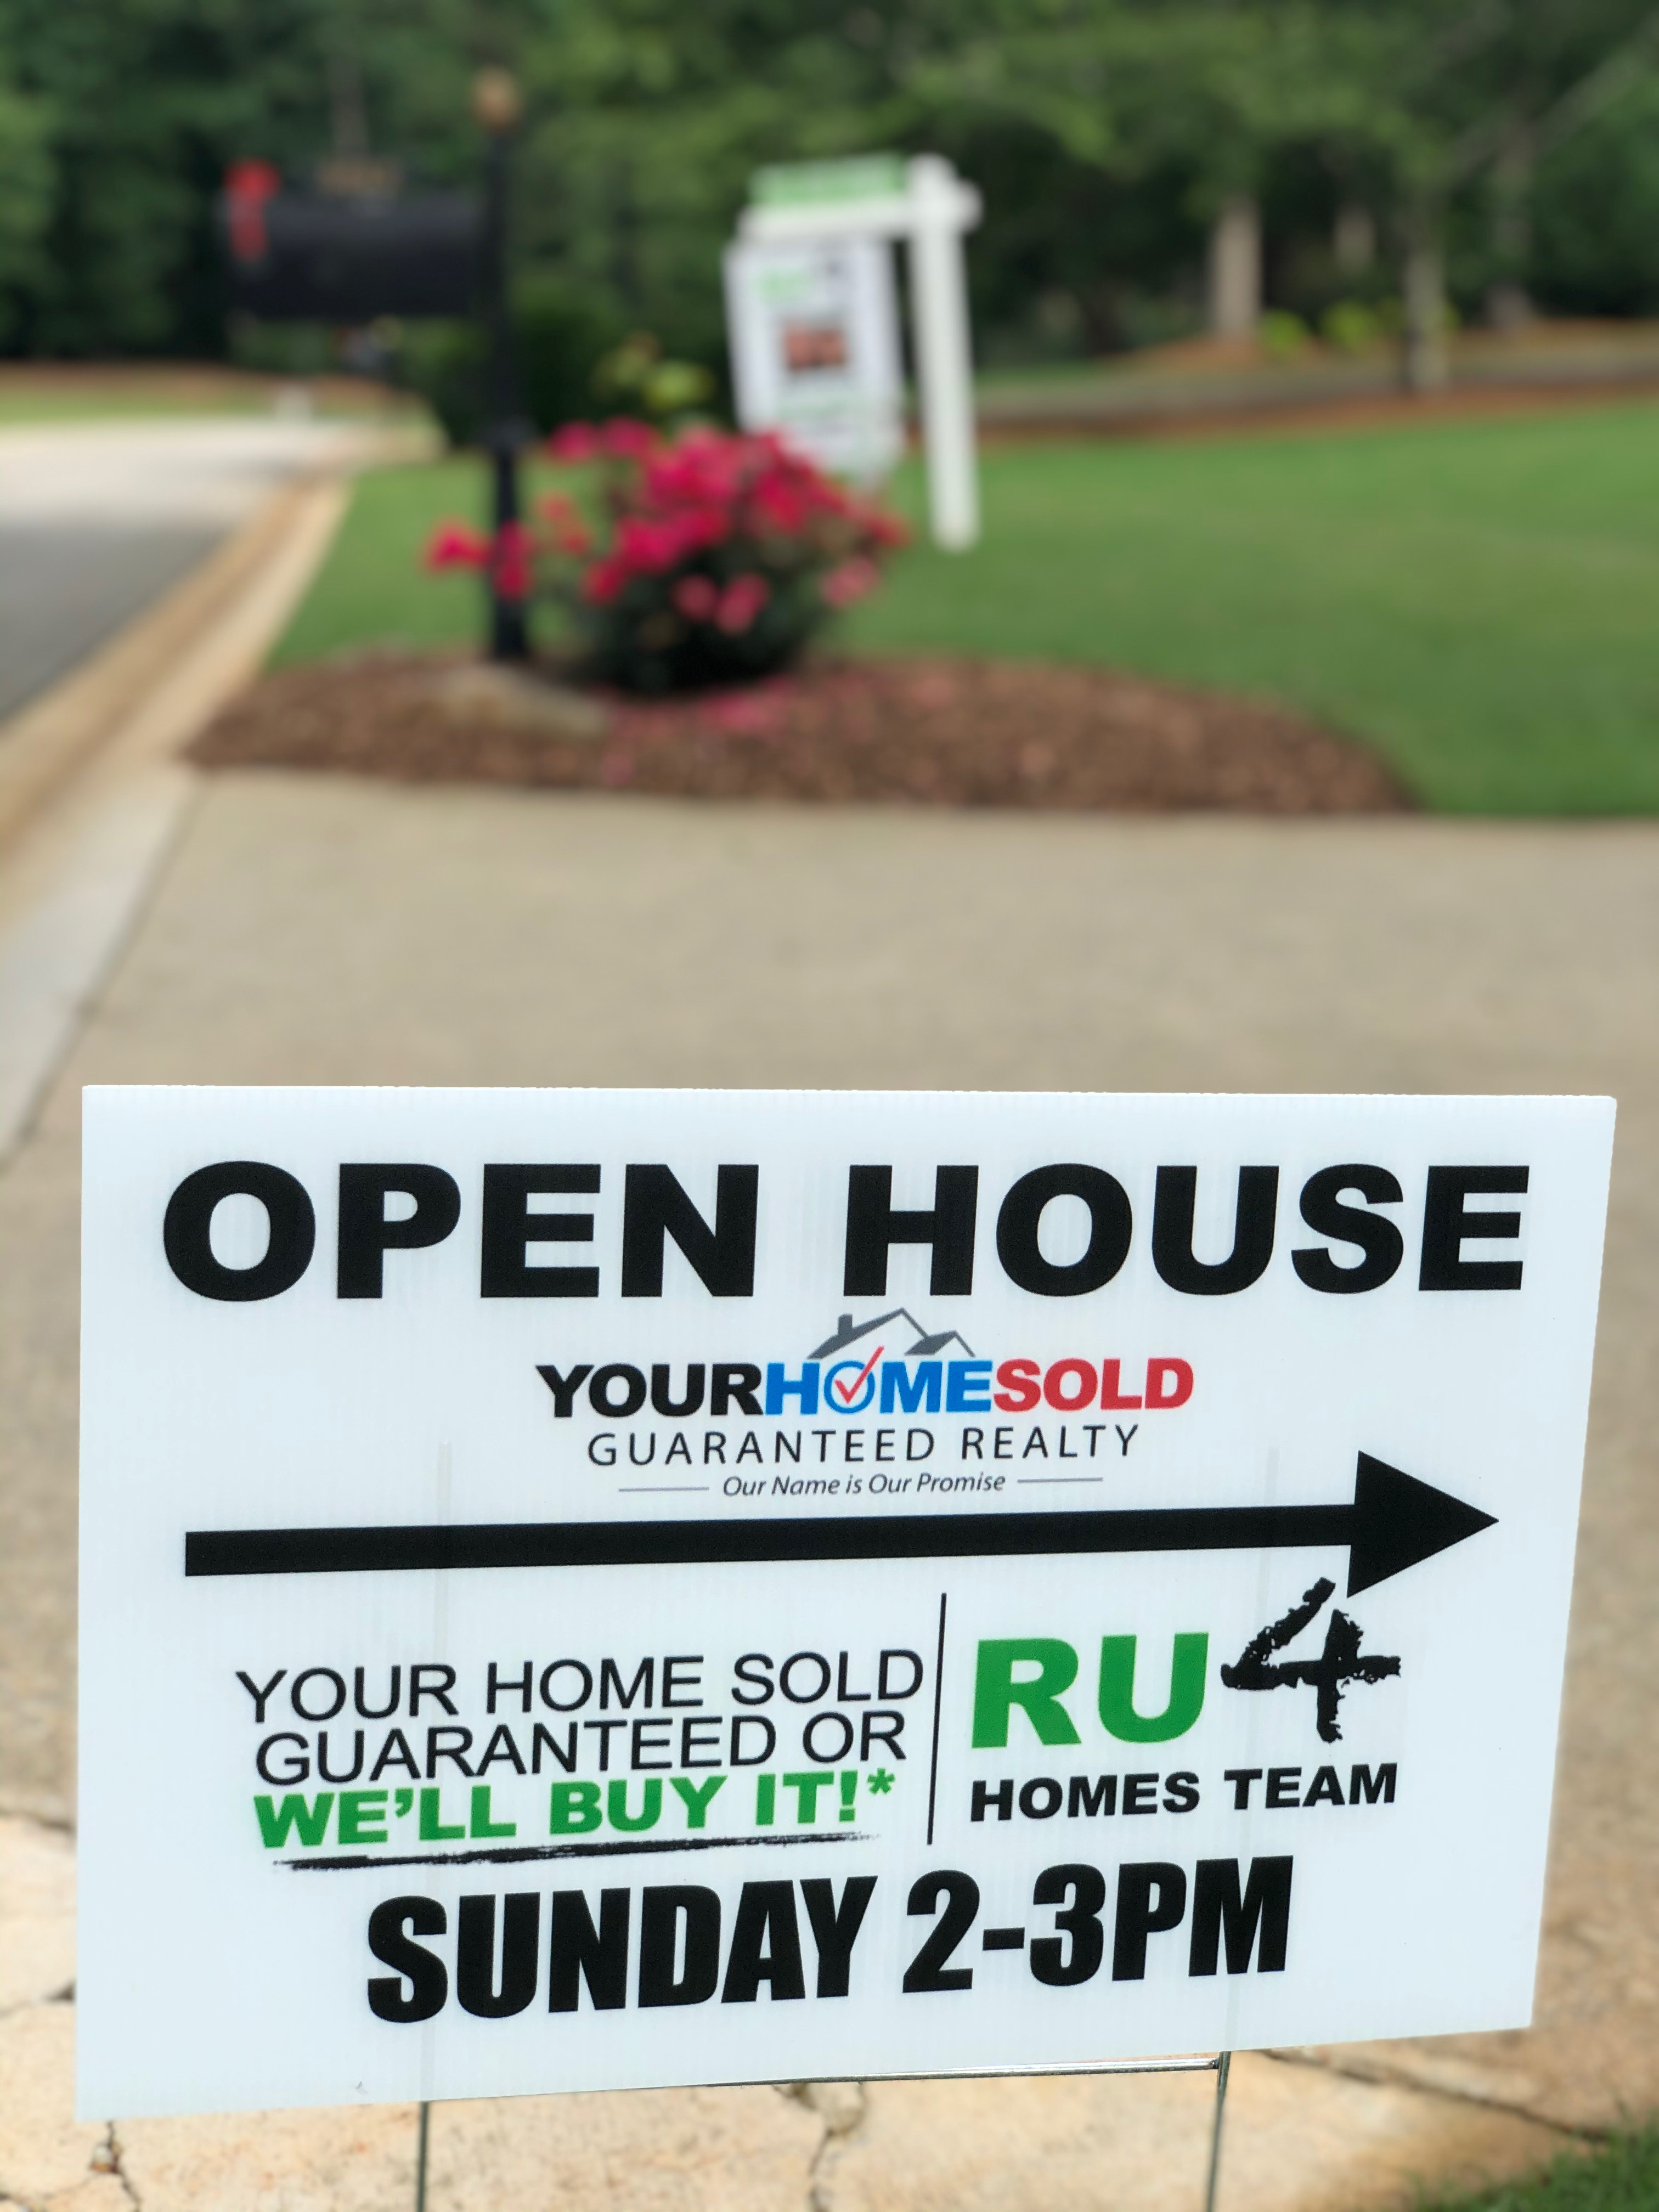 OPEN HOUSES THIS SUNDAY, JUNE 14th from 2-3pm!